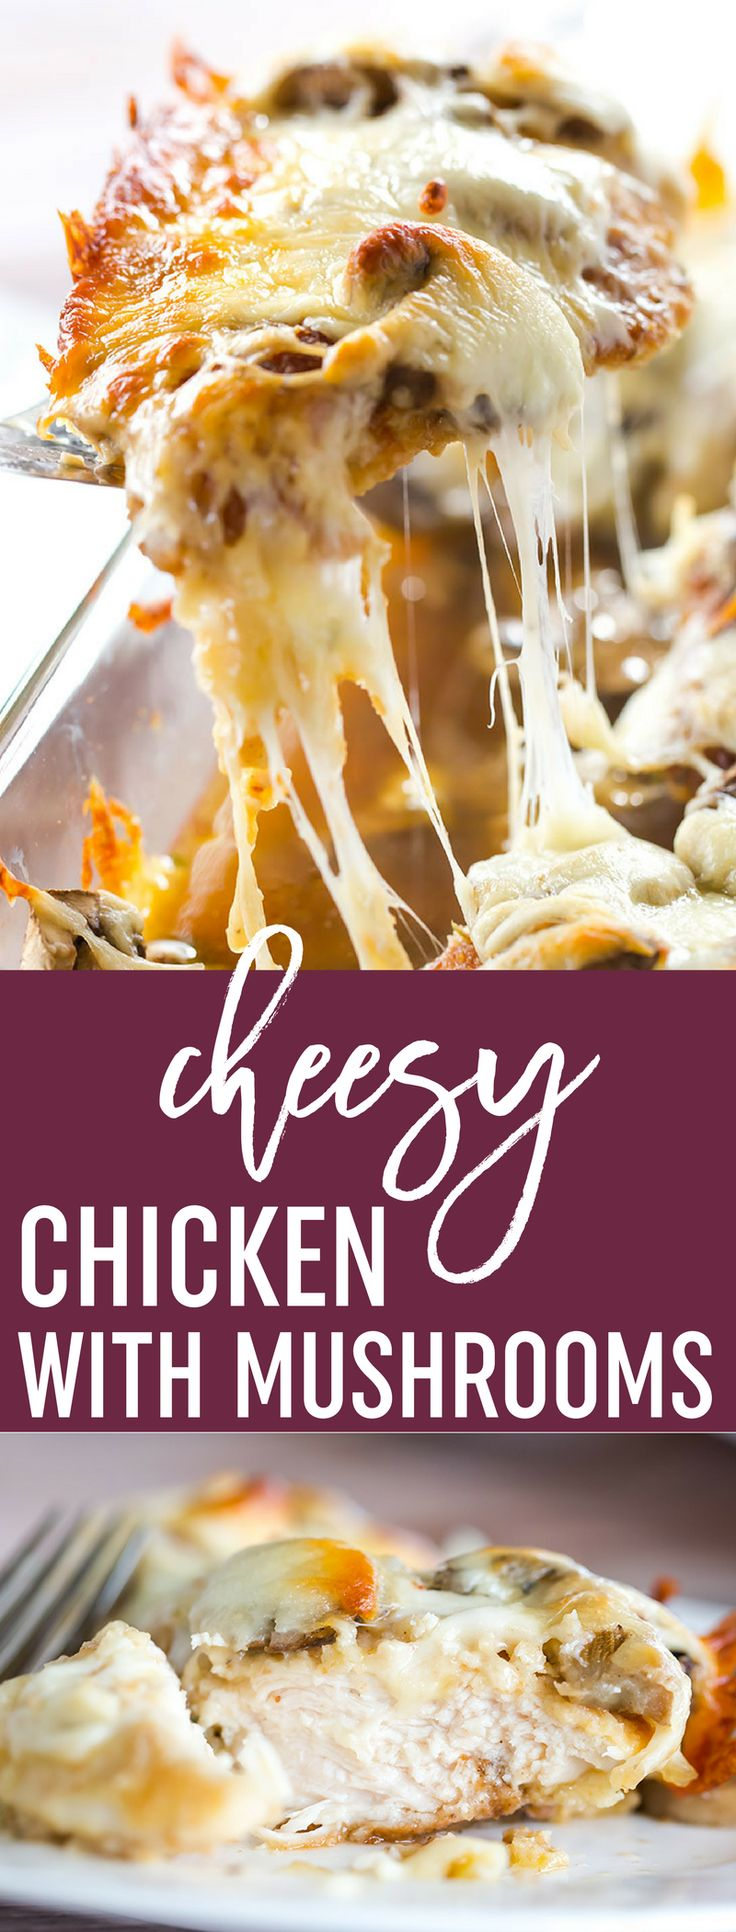 Cheesy Chicken with Mushrooms - Breaded chicken cutlets layered with ...